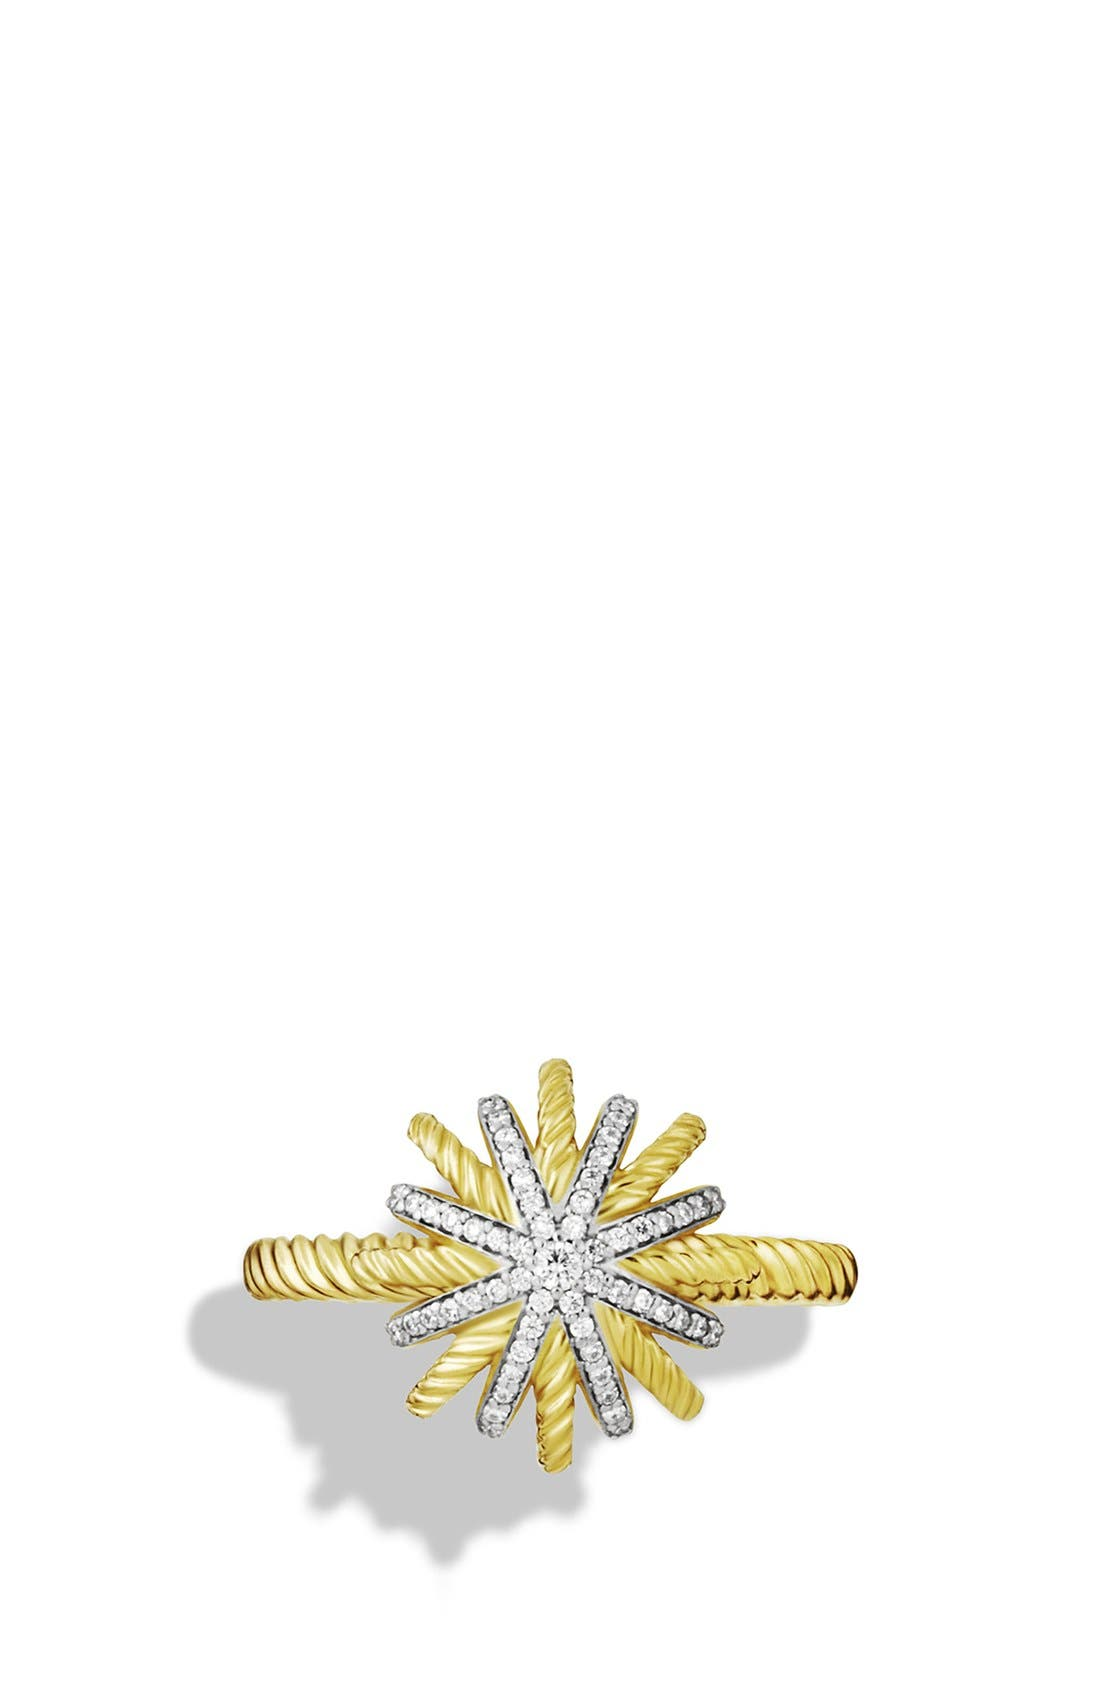 Alternate Image 3  - David Yurman 'Starburst' Ring with Diamonds in Gold